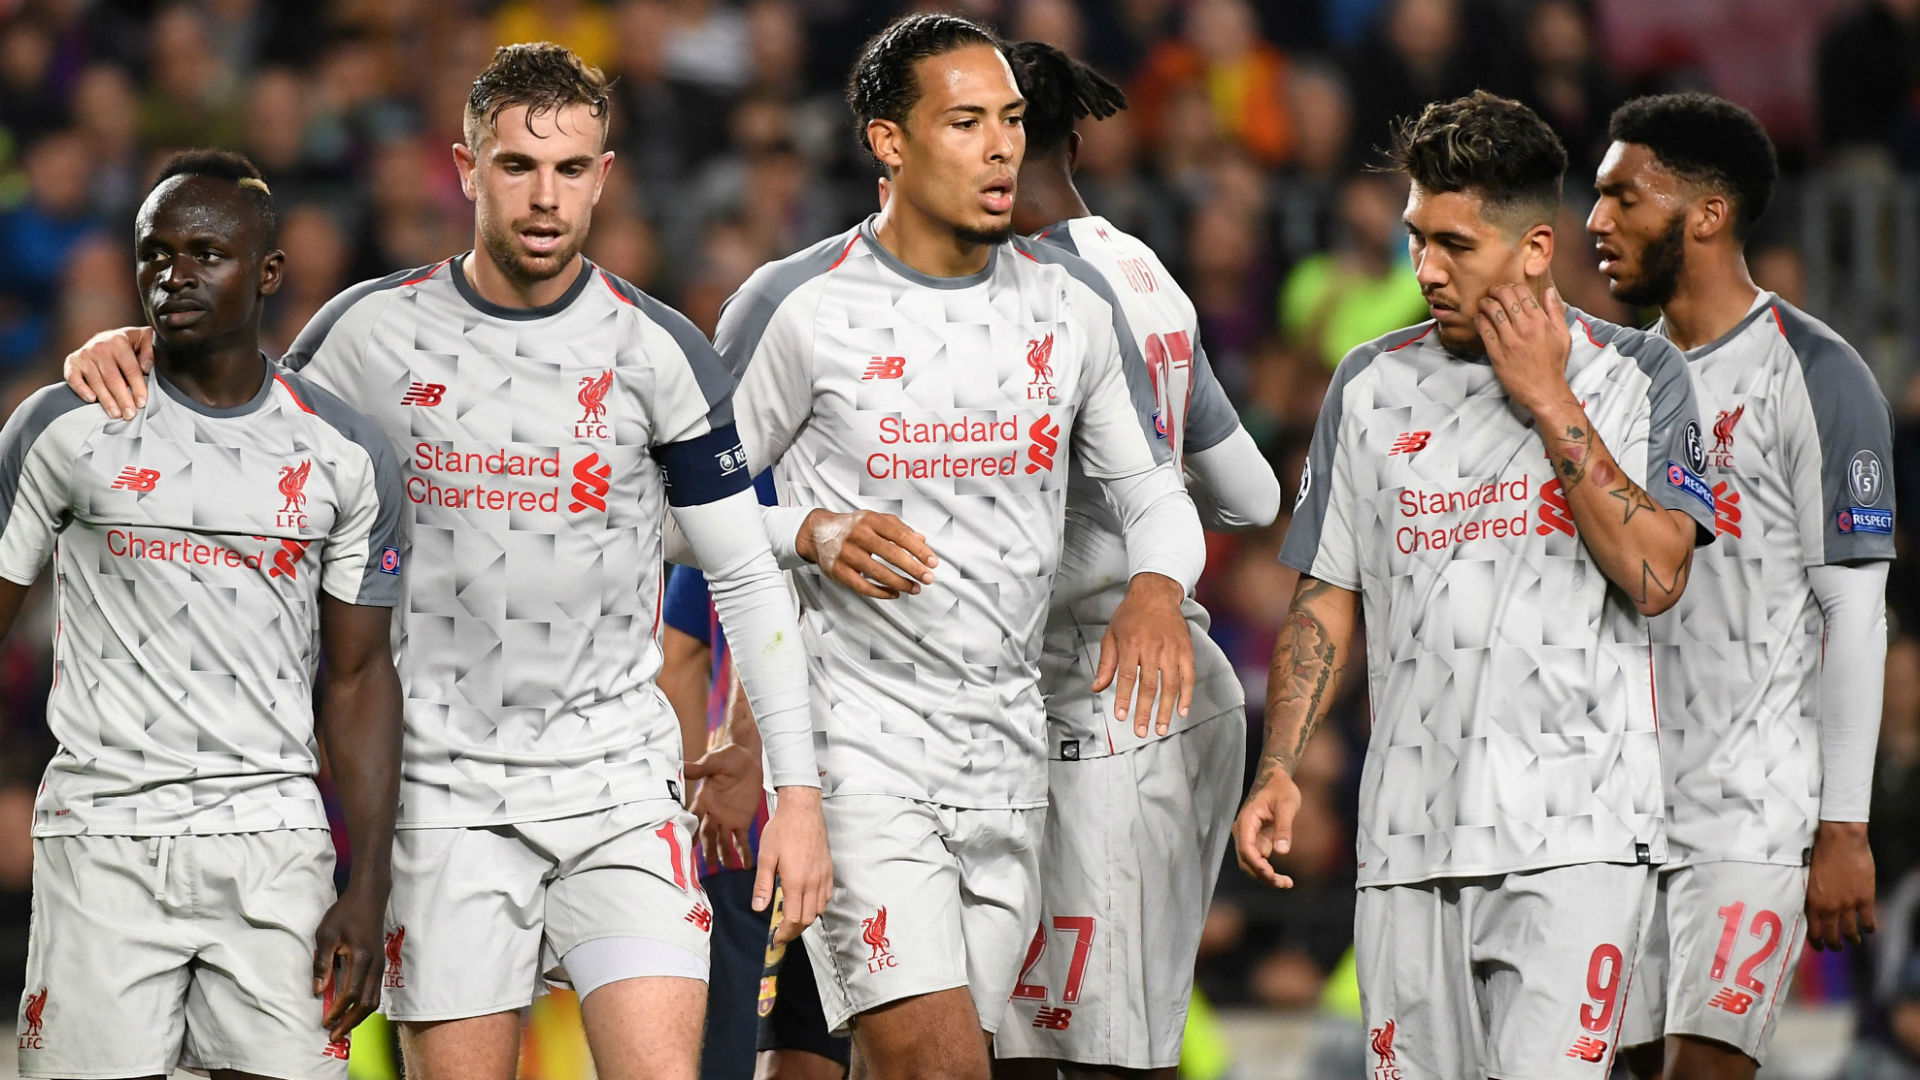 Liverpool-Man City title run-in continues